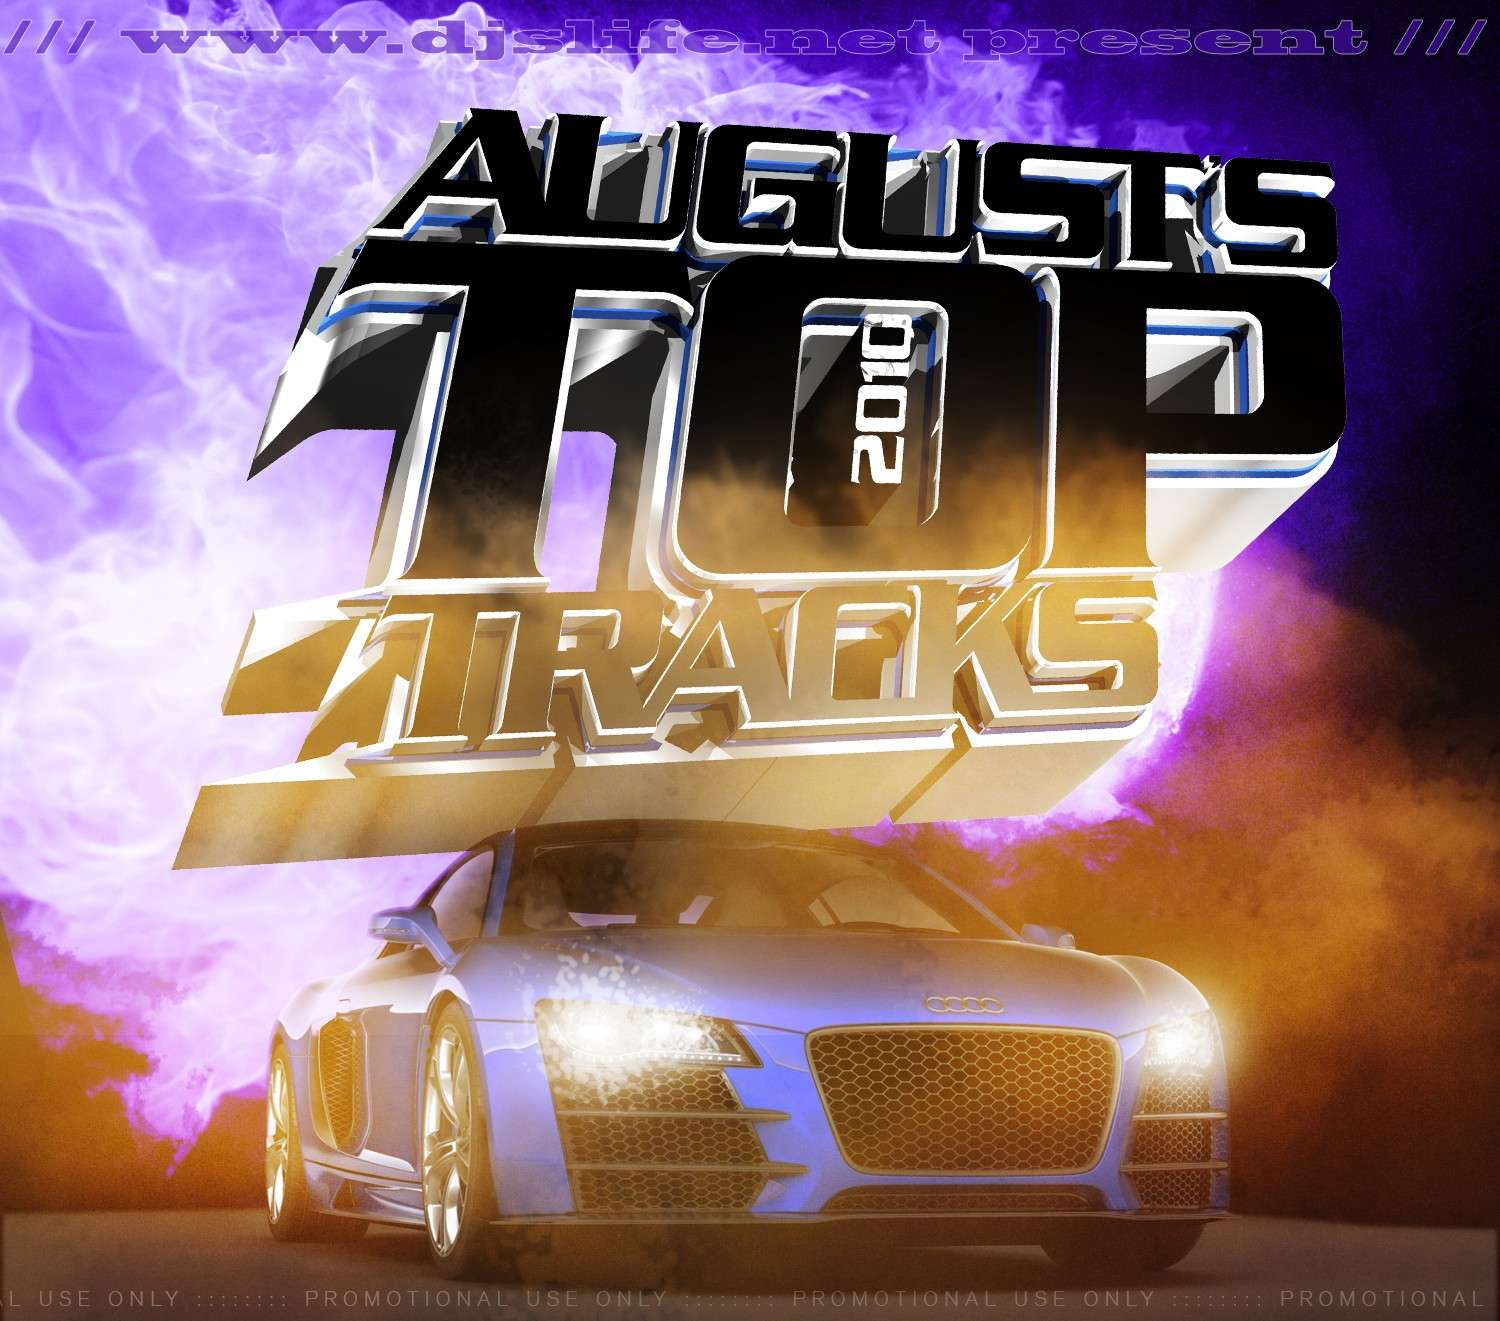 August Top Track's 2010